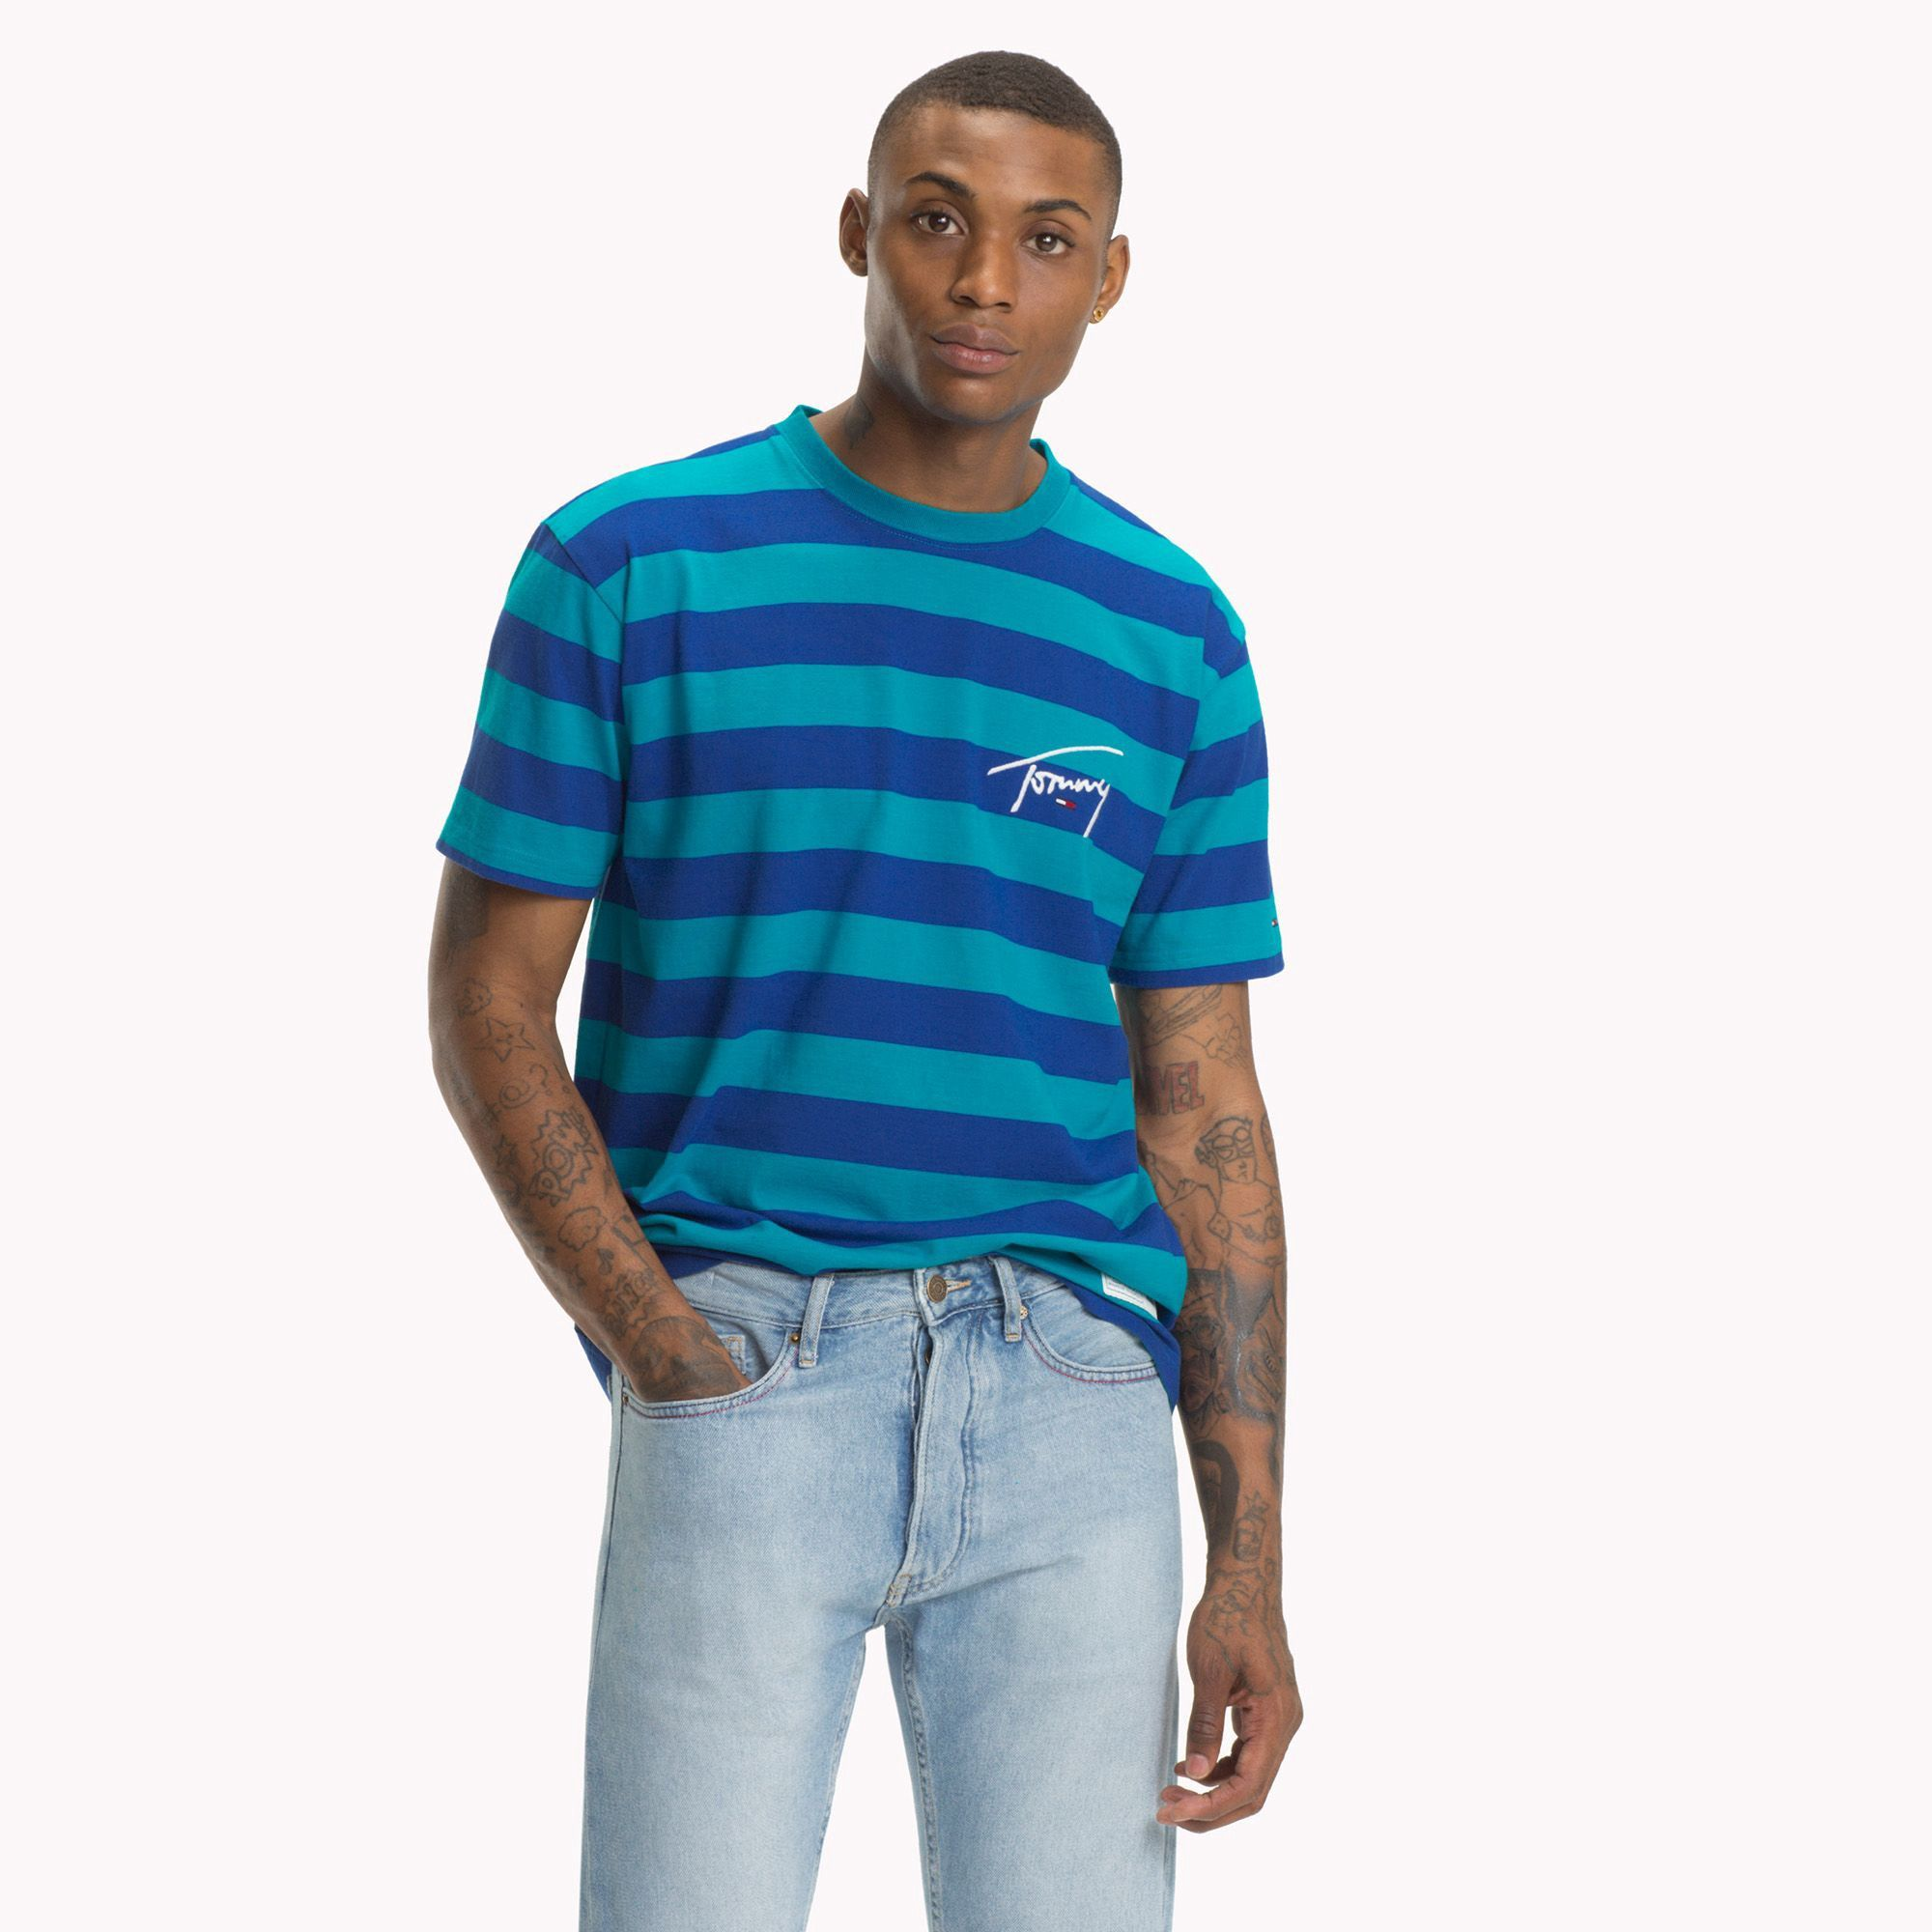 01460ca695 Tommy Jeans Xplore Signature Stripe T-Shirt by Tommy Hilfiger in ...